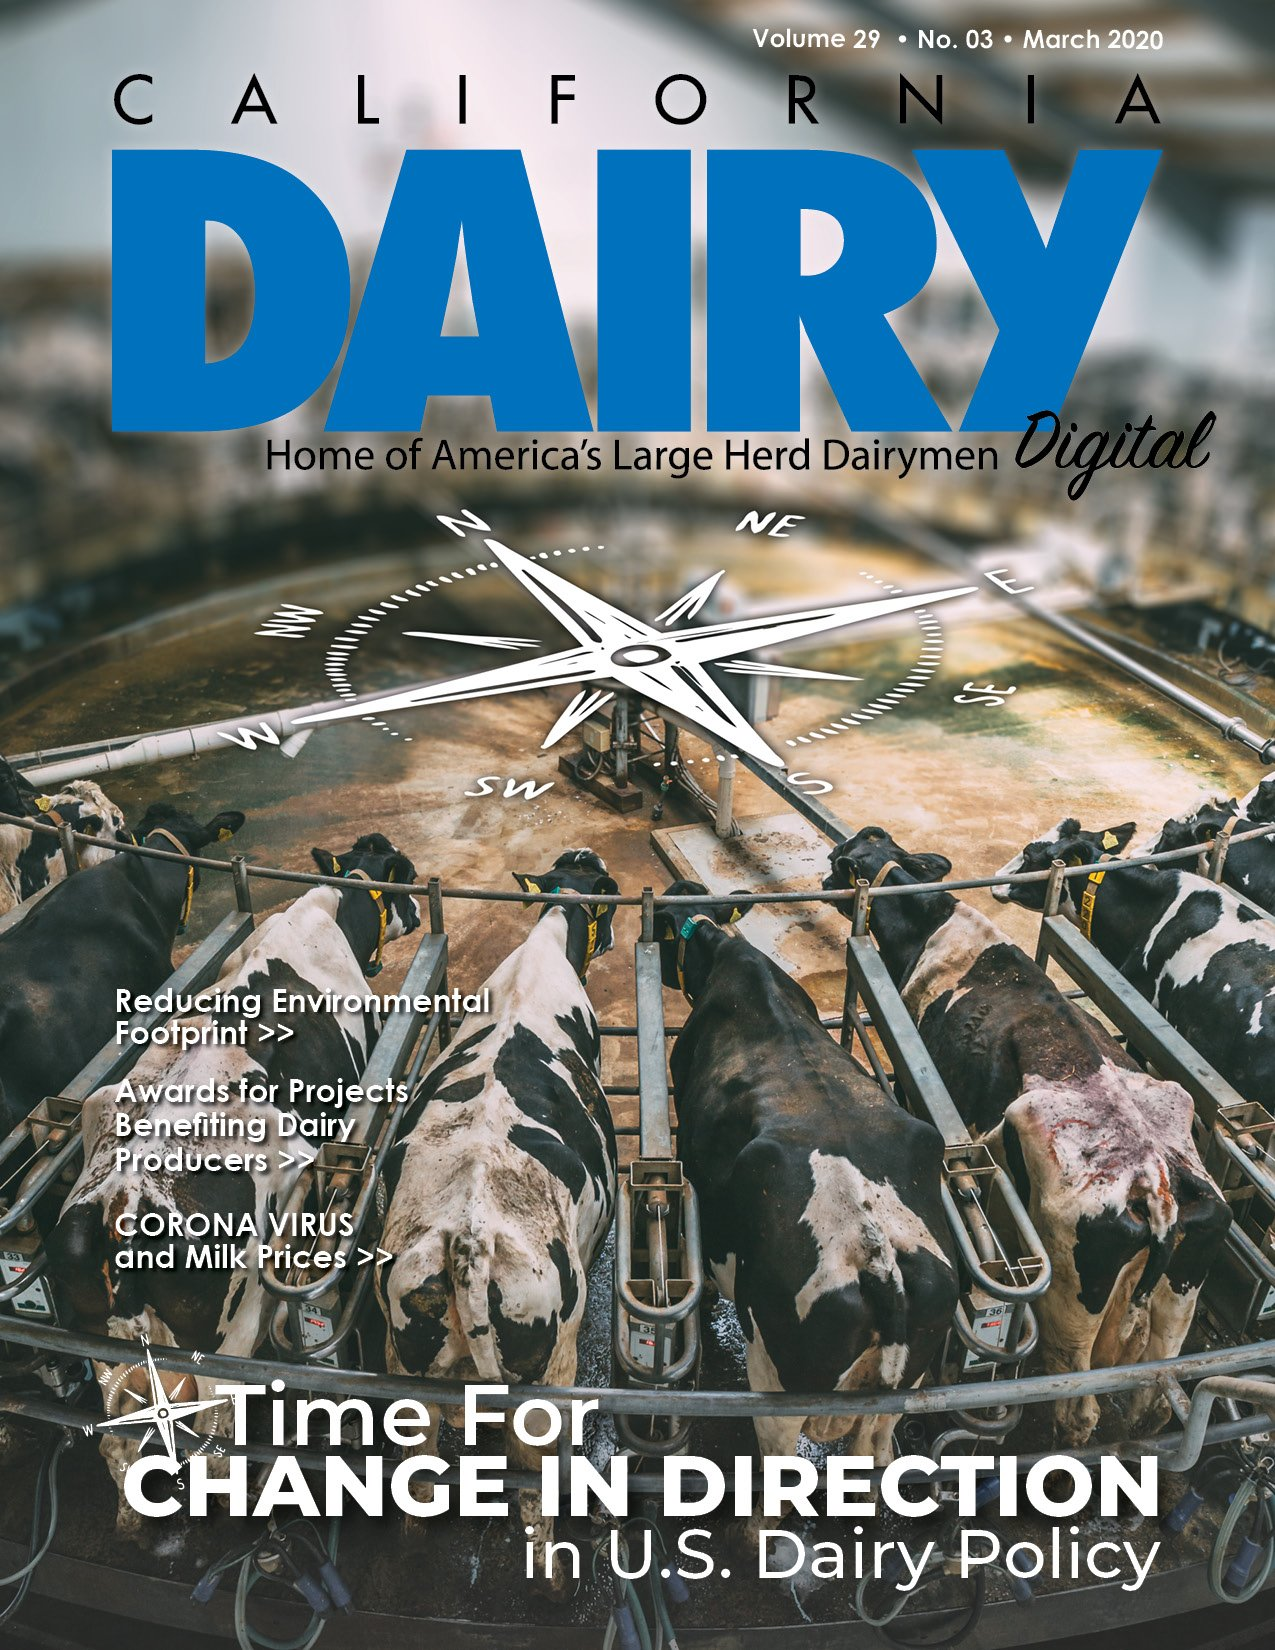 READ - March 2020 Issue